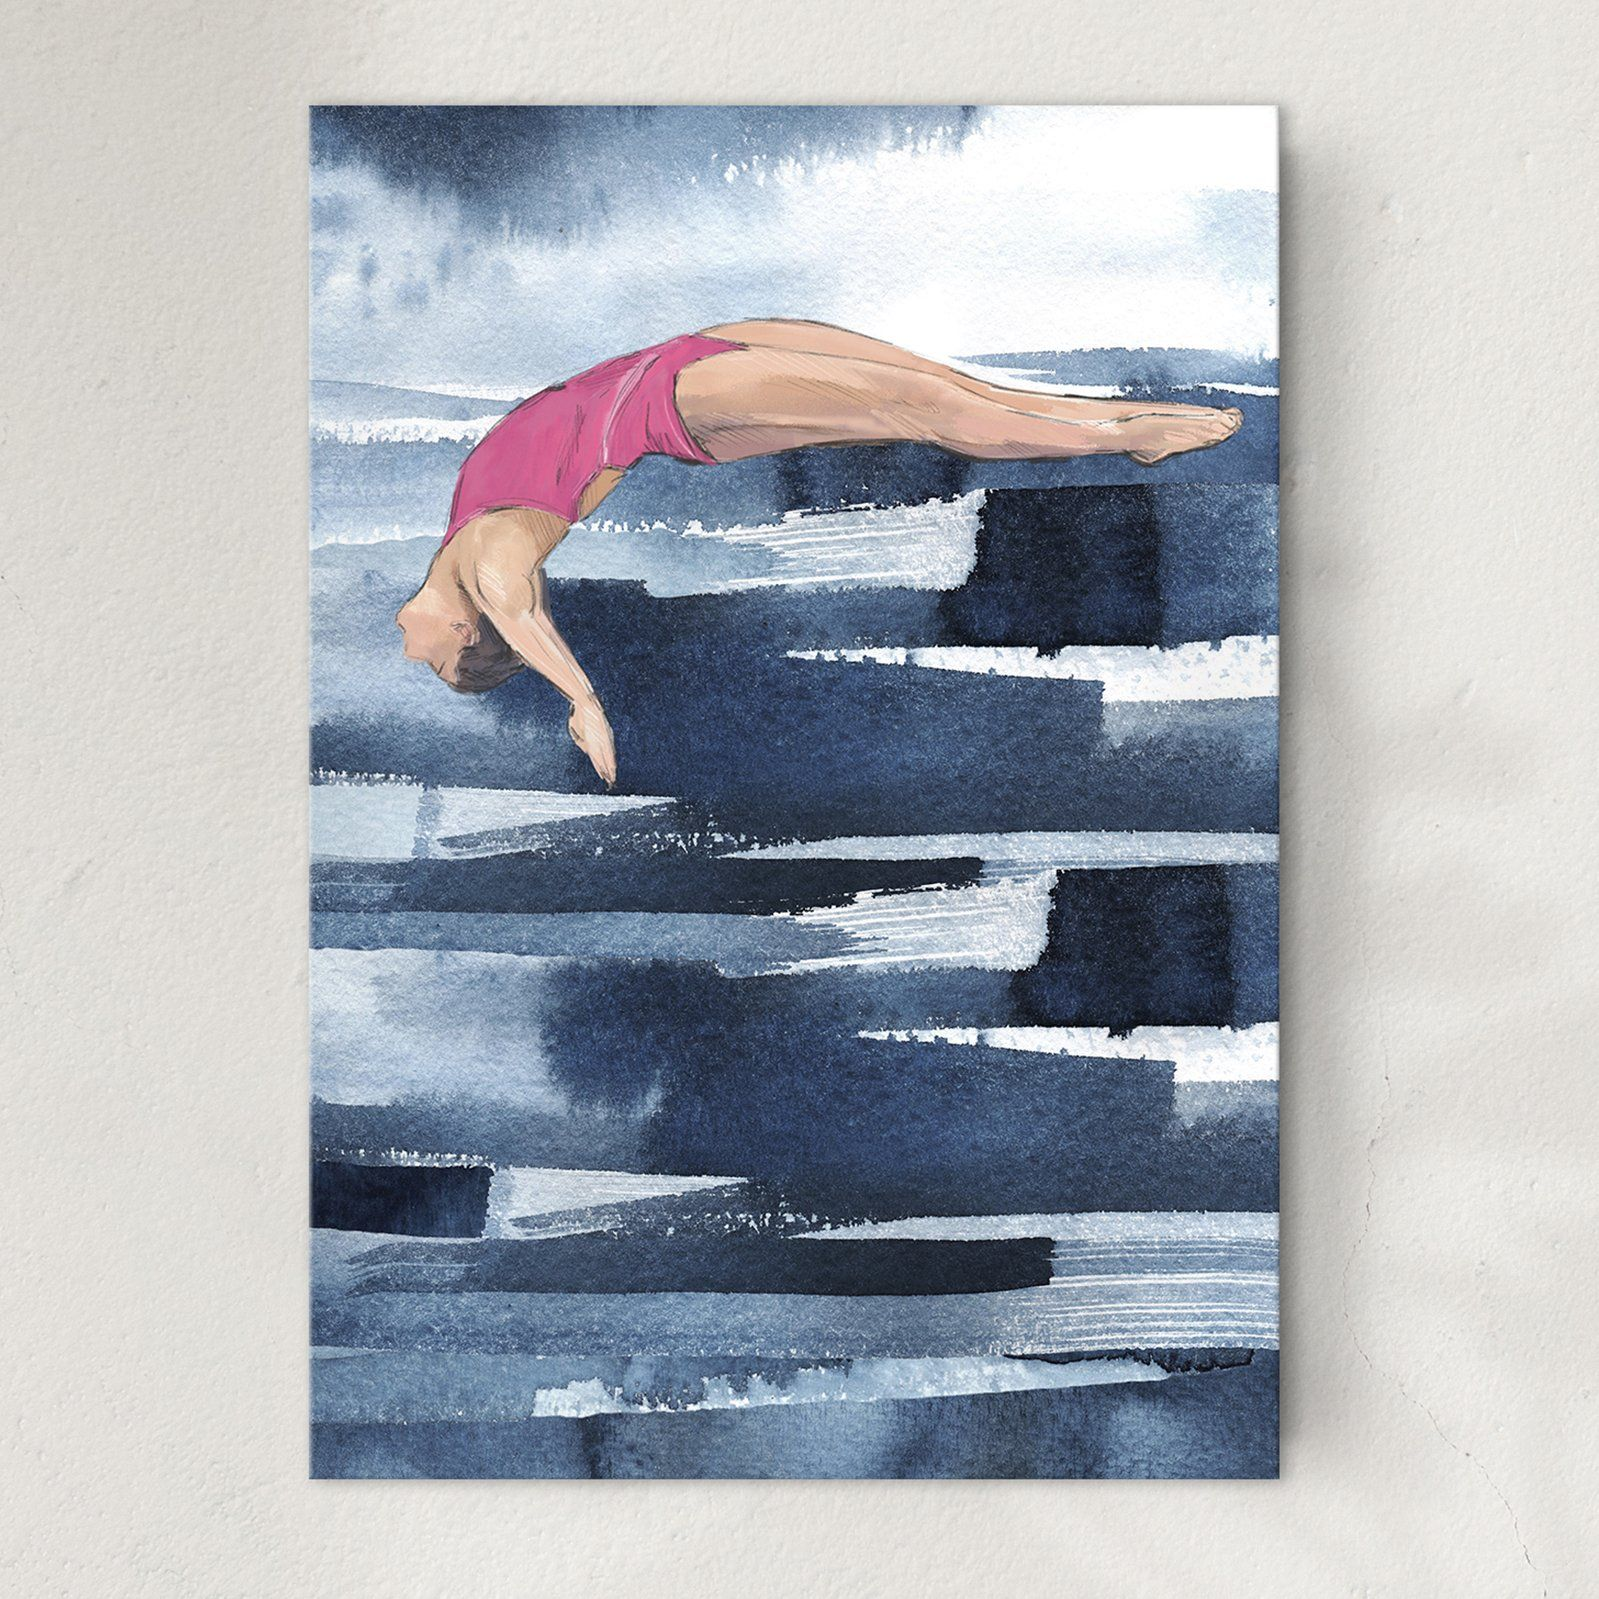 Diving girl - Glide, art print. Unframed.